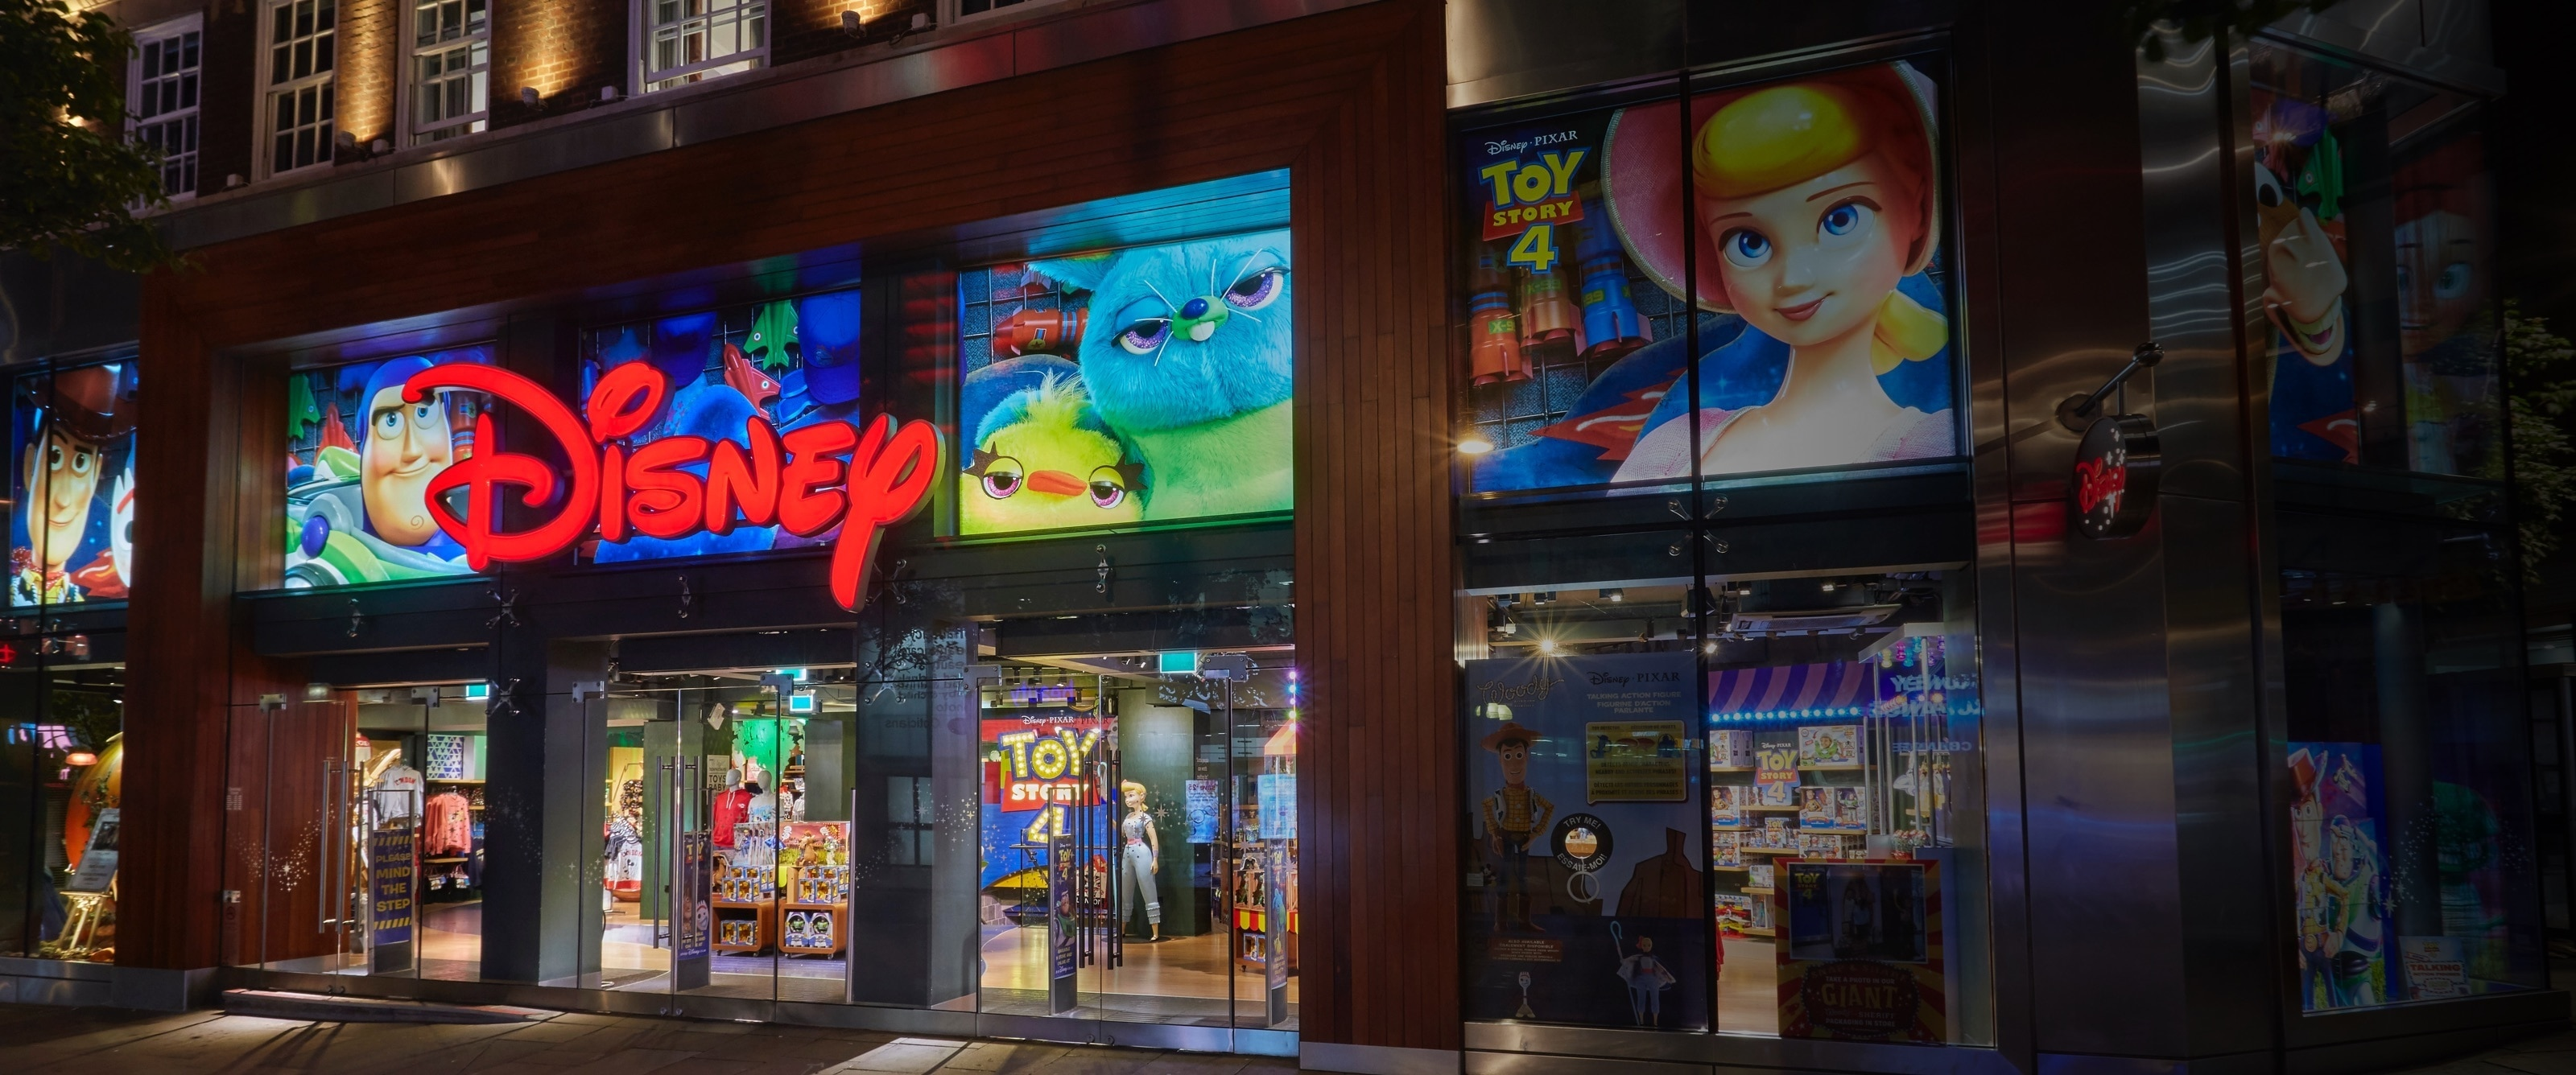 Disney Store comeptition is closed